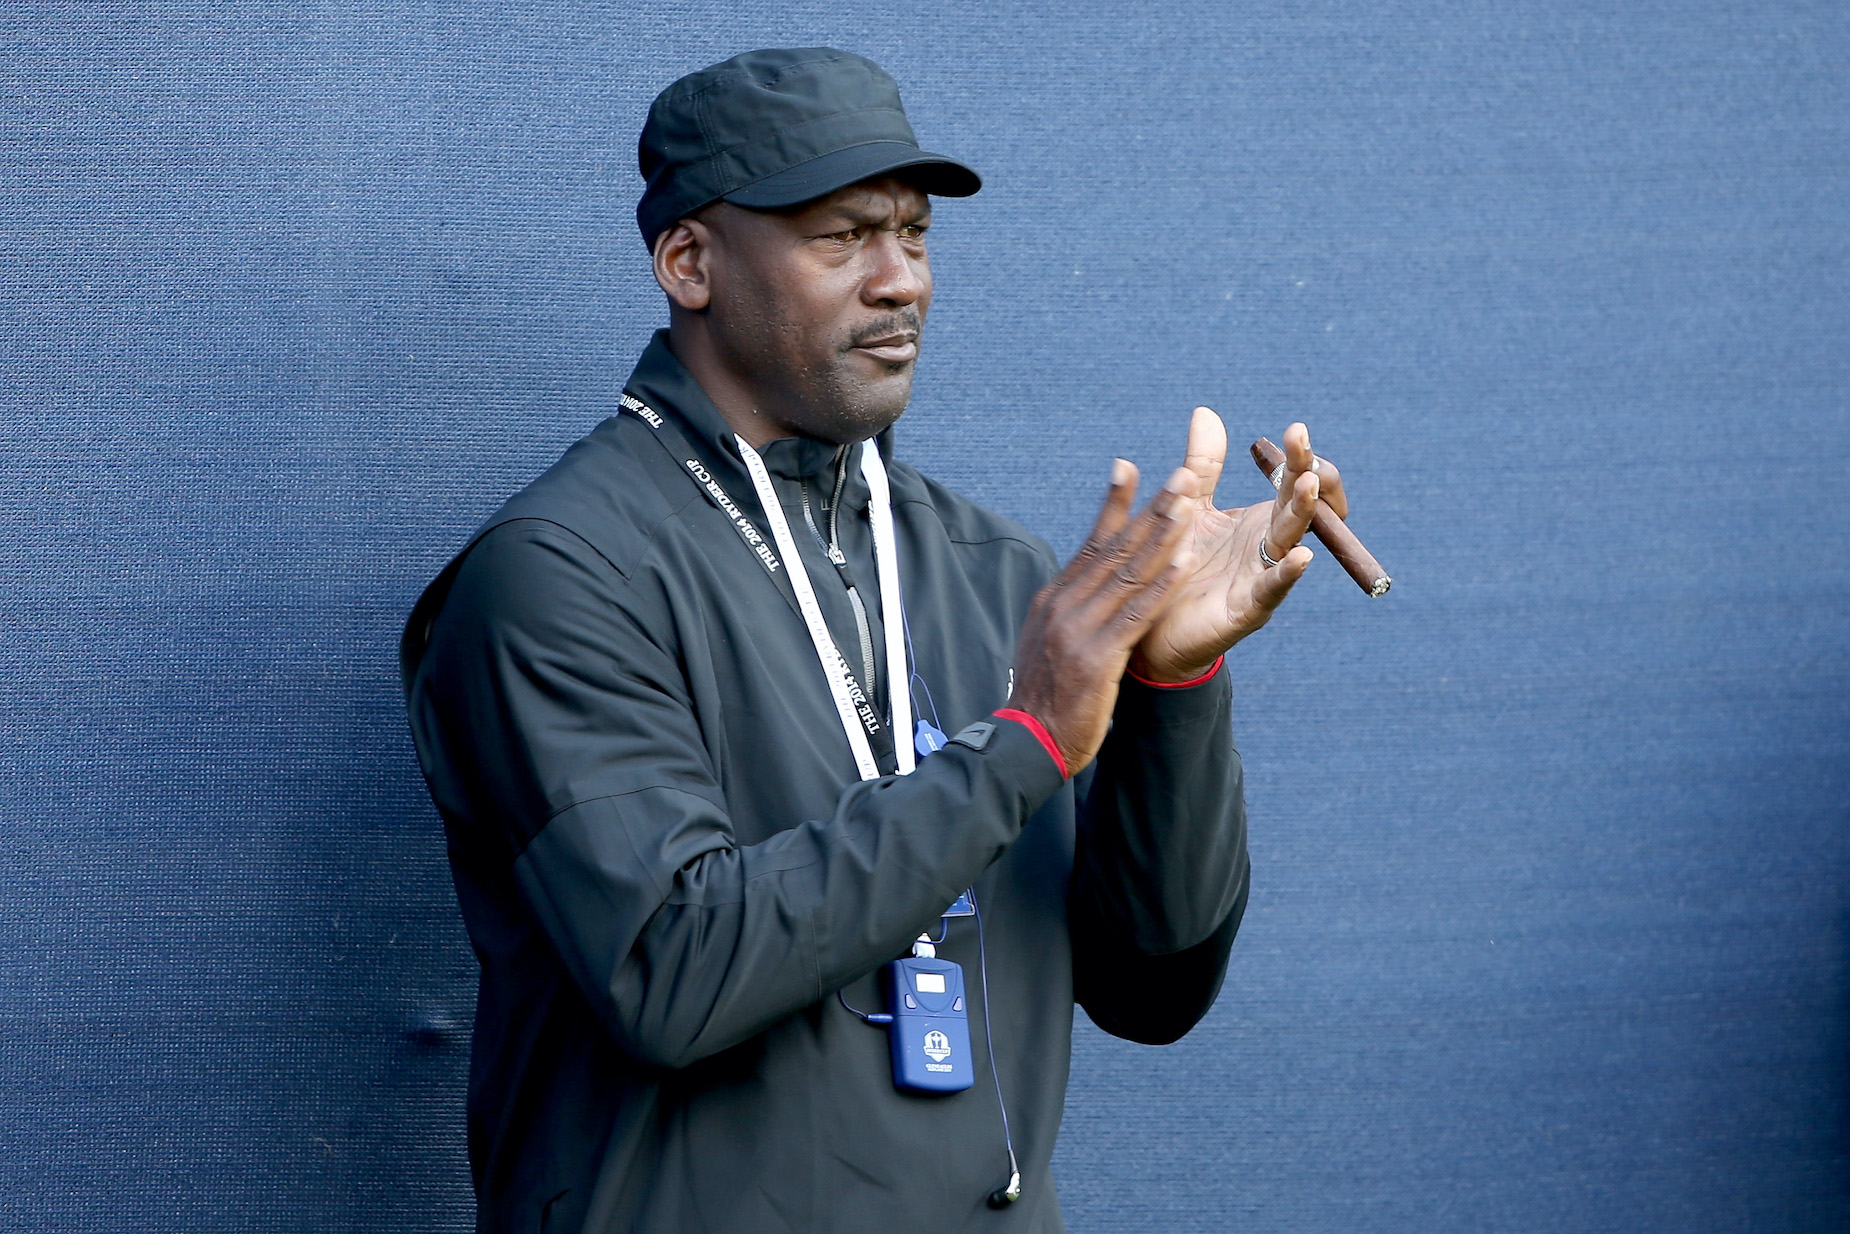 NBA legend Michael Jordan claps during the 2014 Ryder Cup in Scotland.